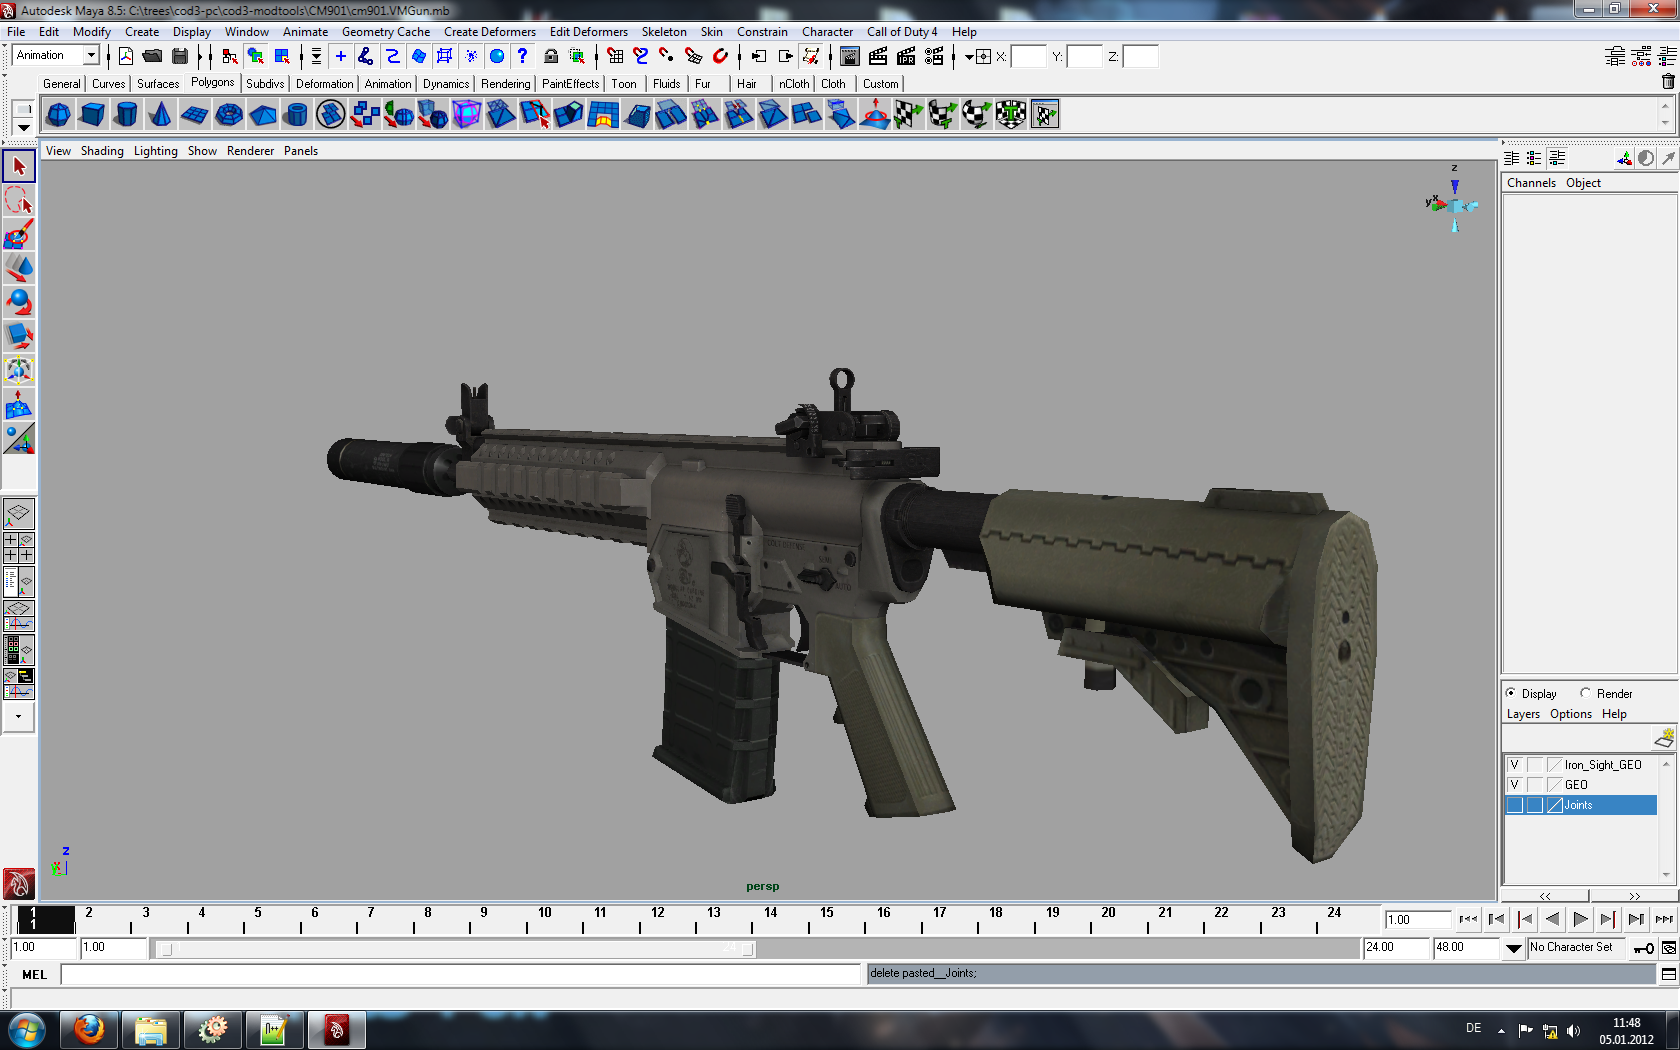 CM901   model image   Icecold Warfare mod for Call of Duty 4 1680x1050